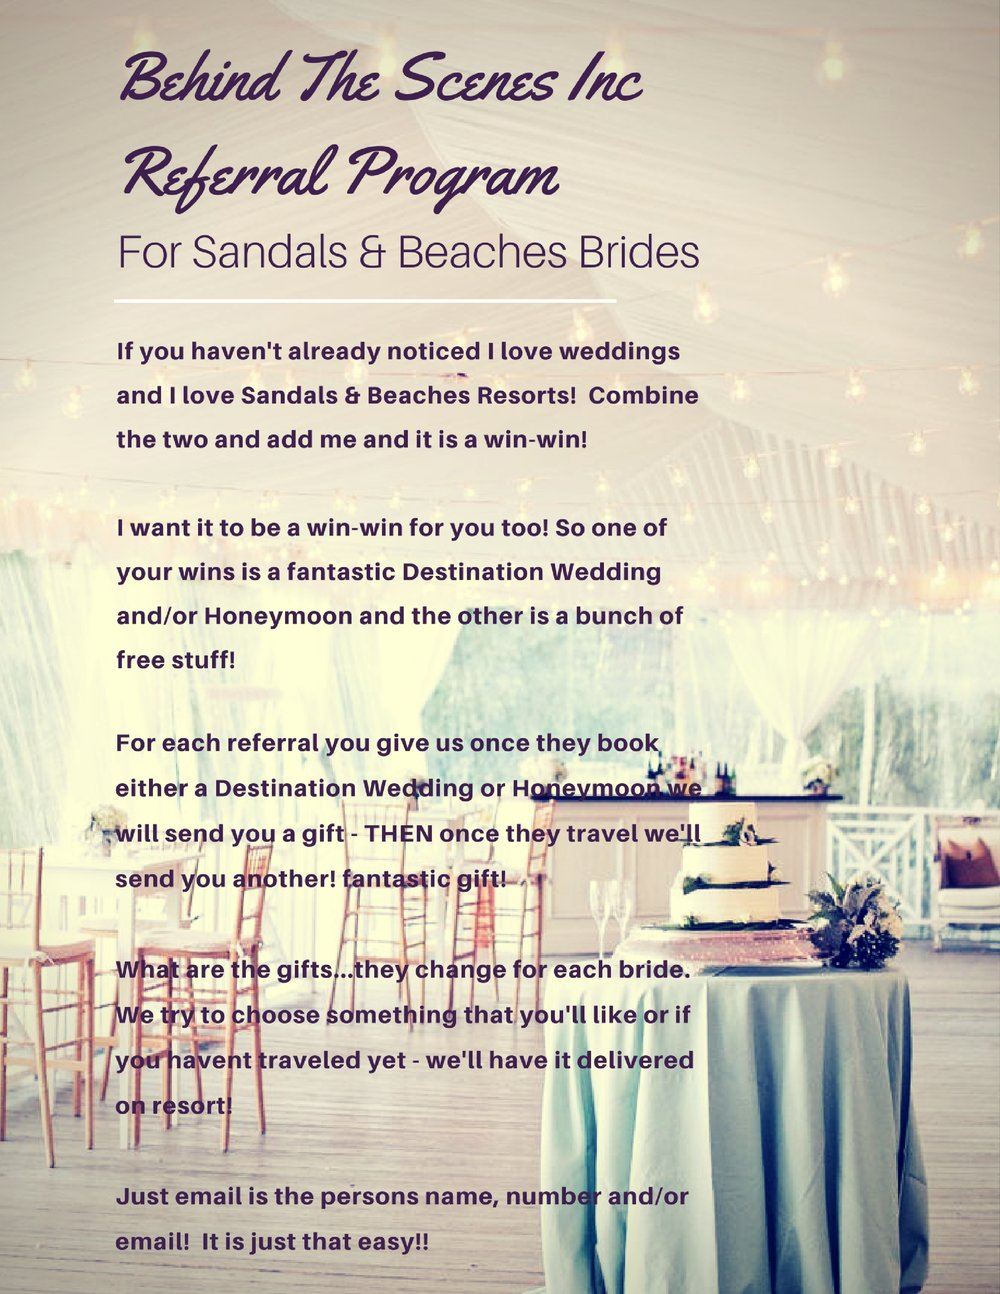 Referral Program - Sandals & Beaches Brides.jpg